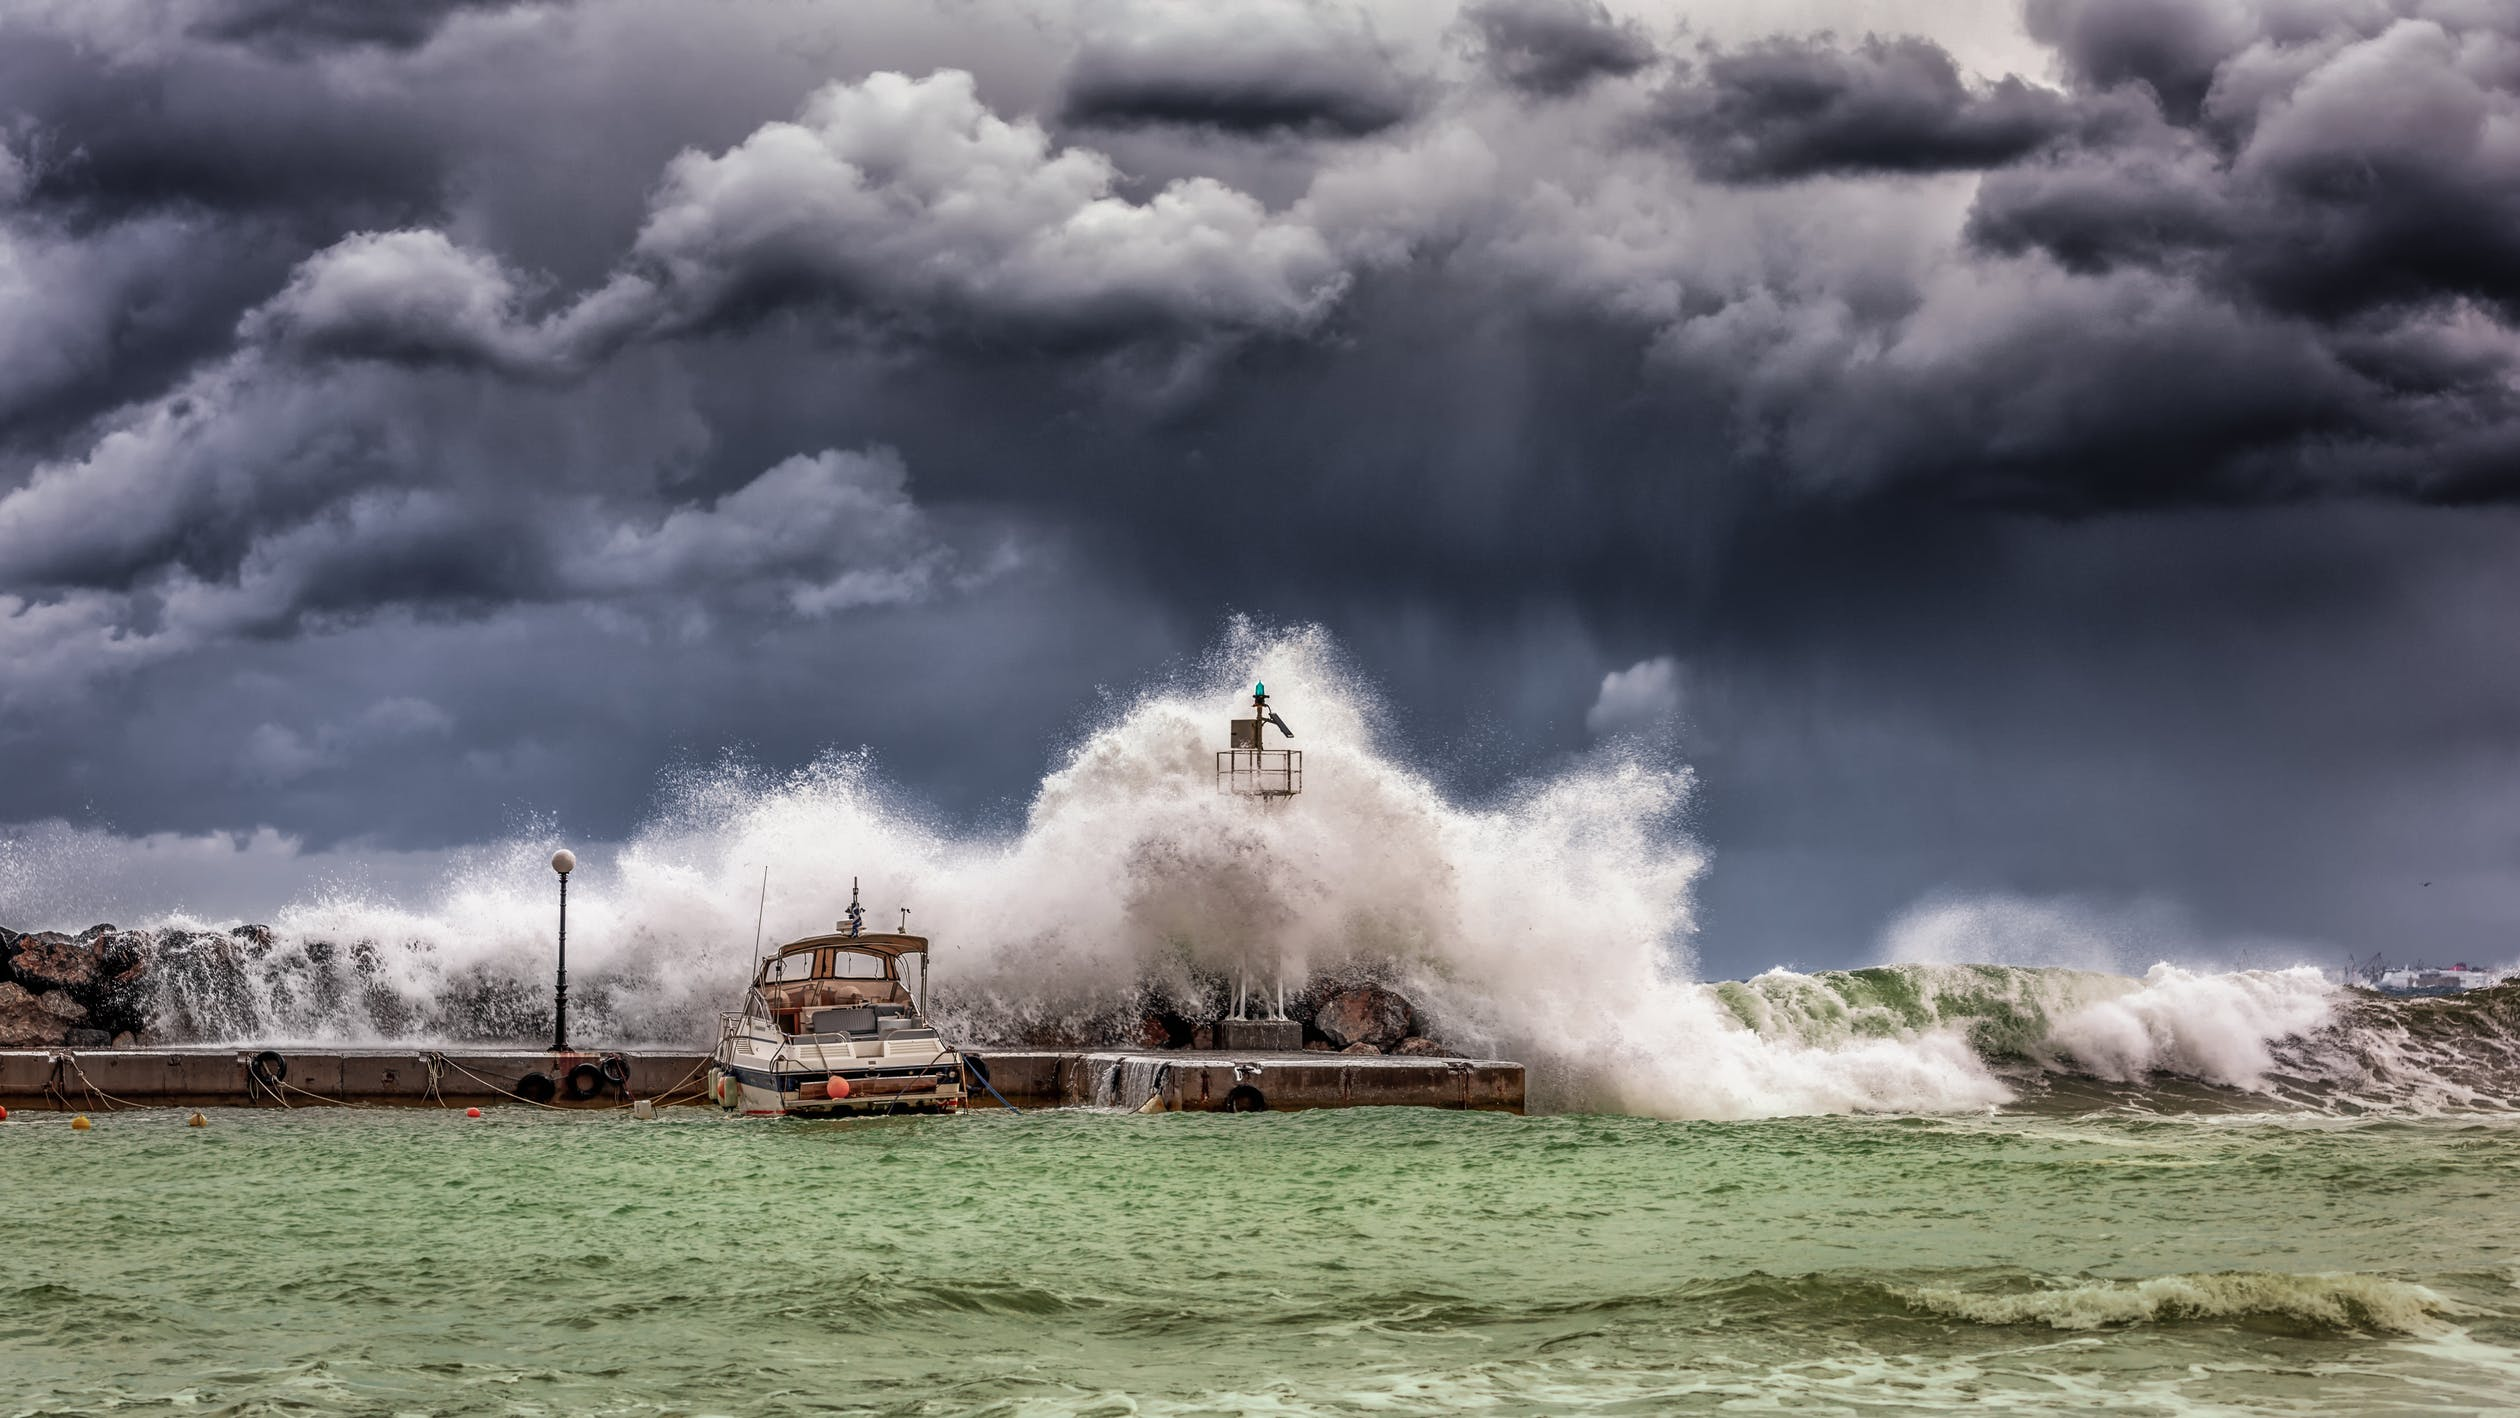 Storm over water with big waves crashing into boat and dock